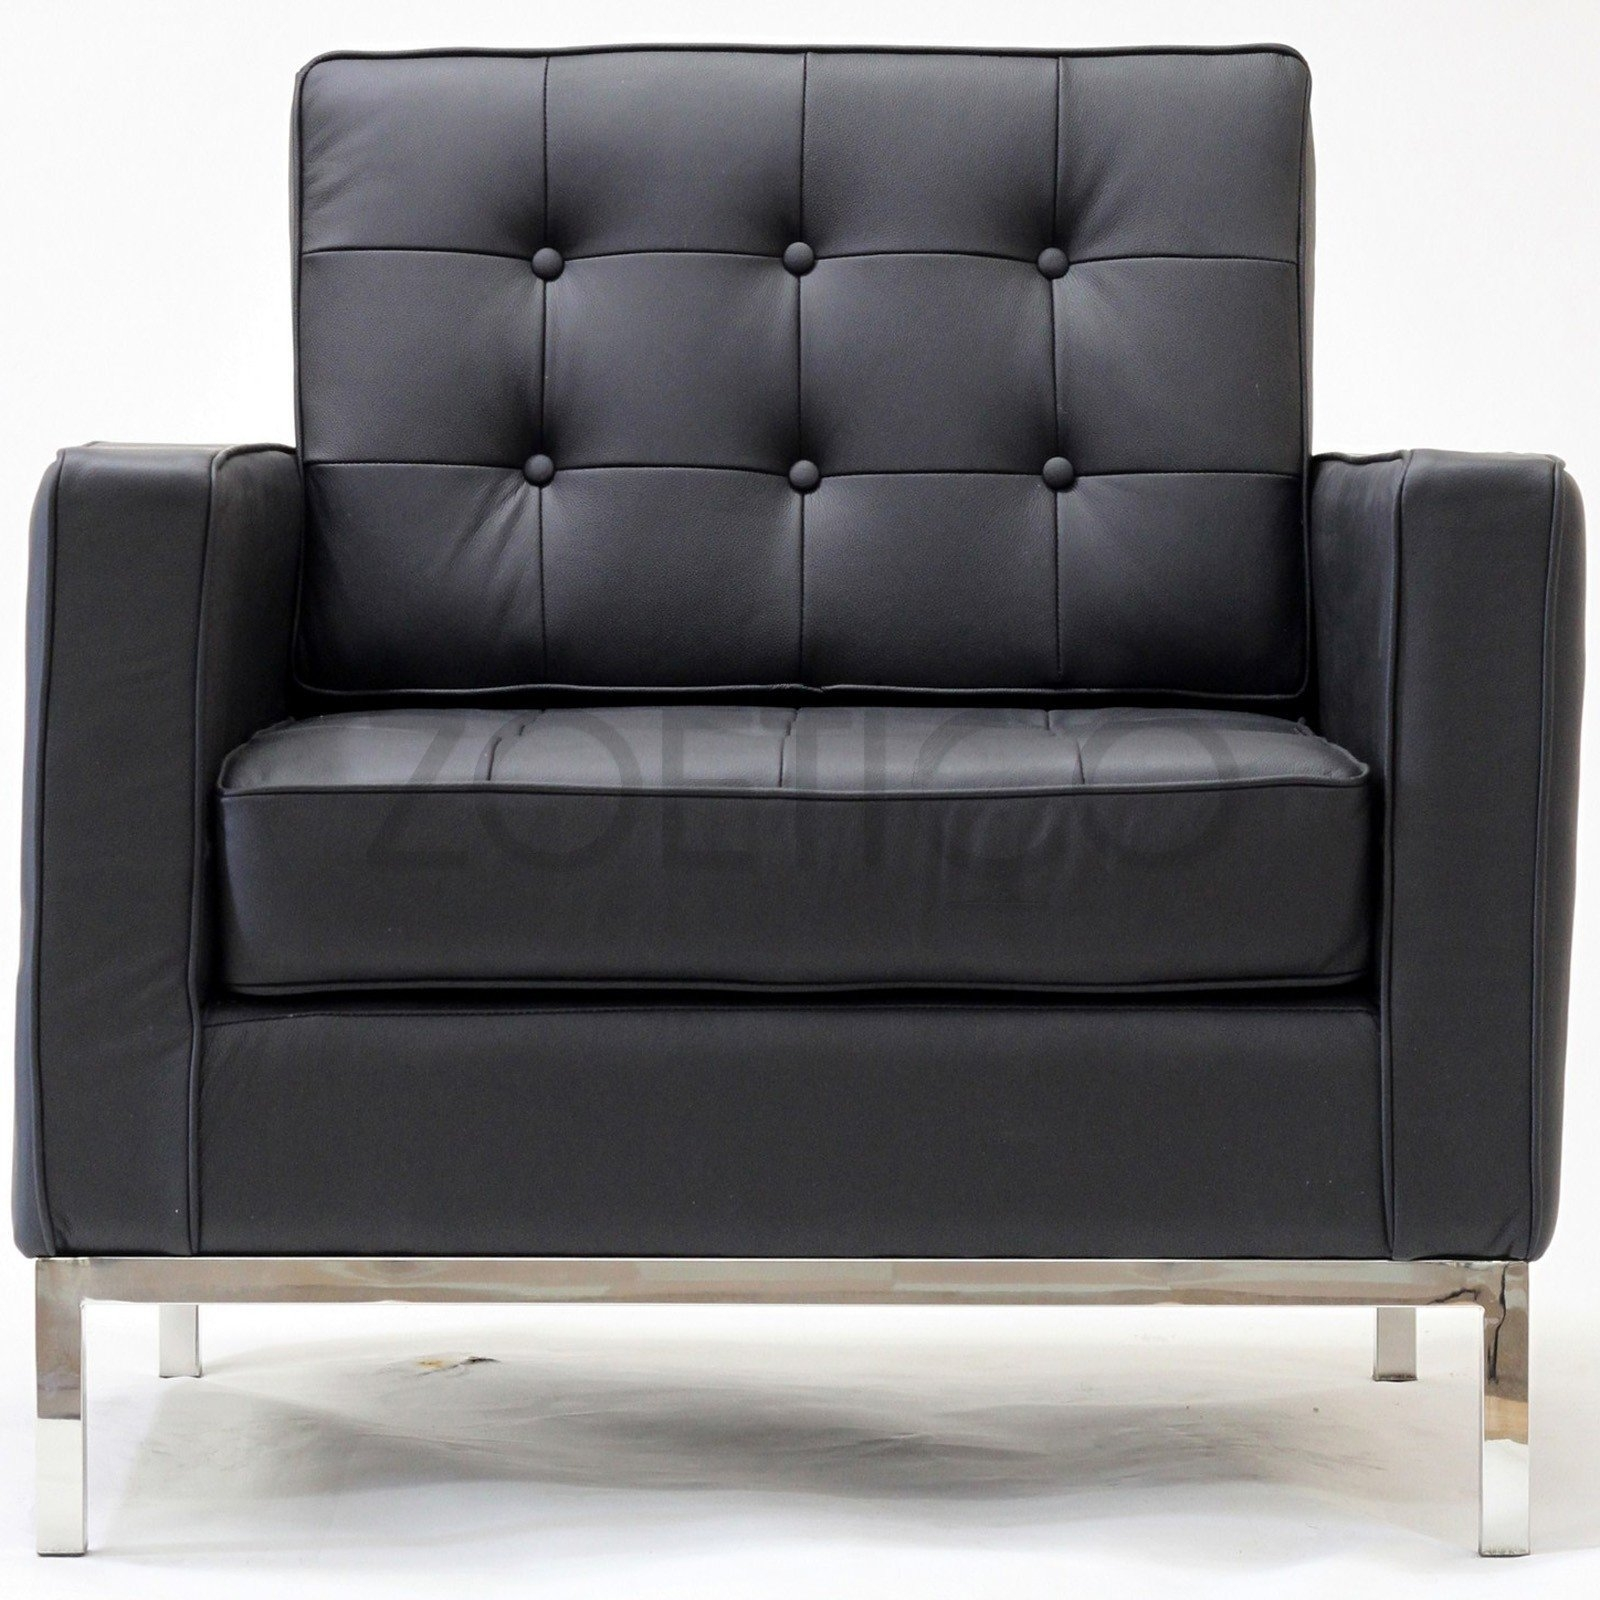 15 photos florence knoll leather sofas sofa ideas. Black Bedroom Furniture Sets. Home Design Ideas